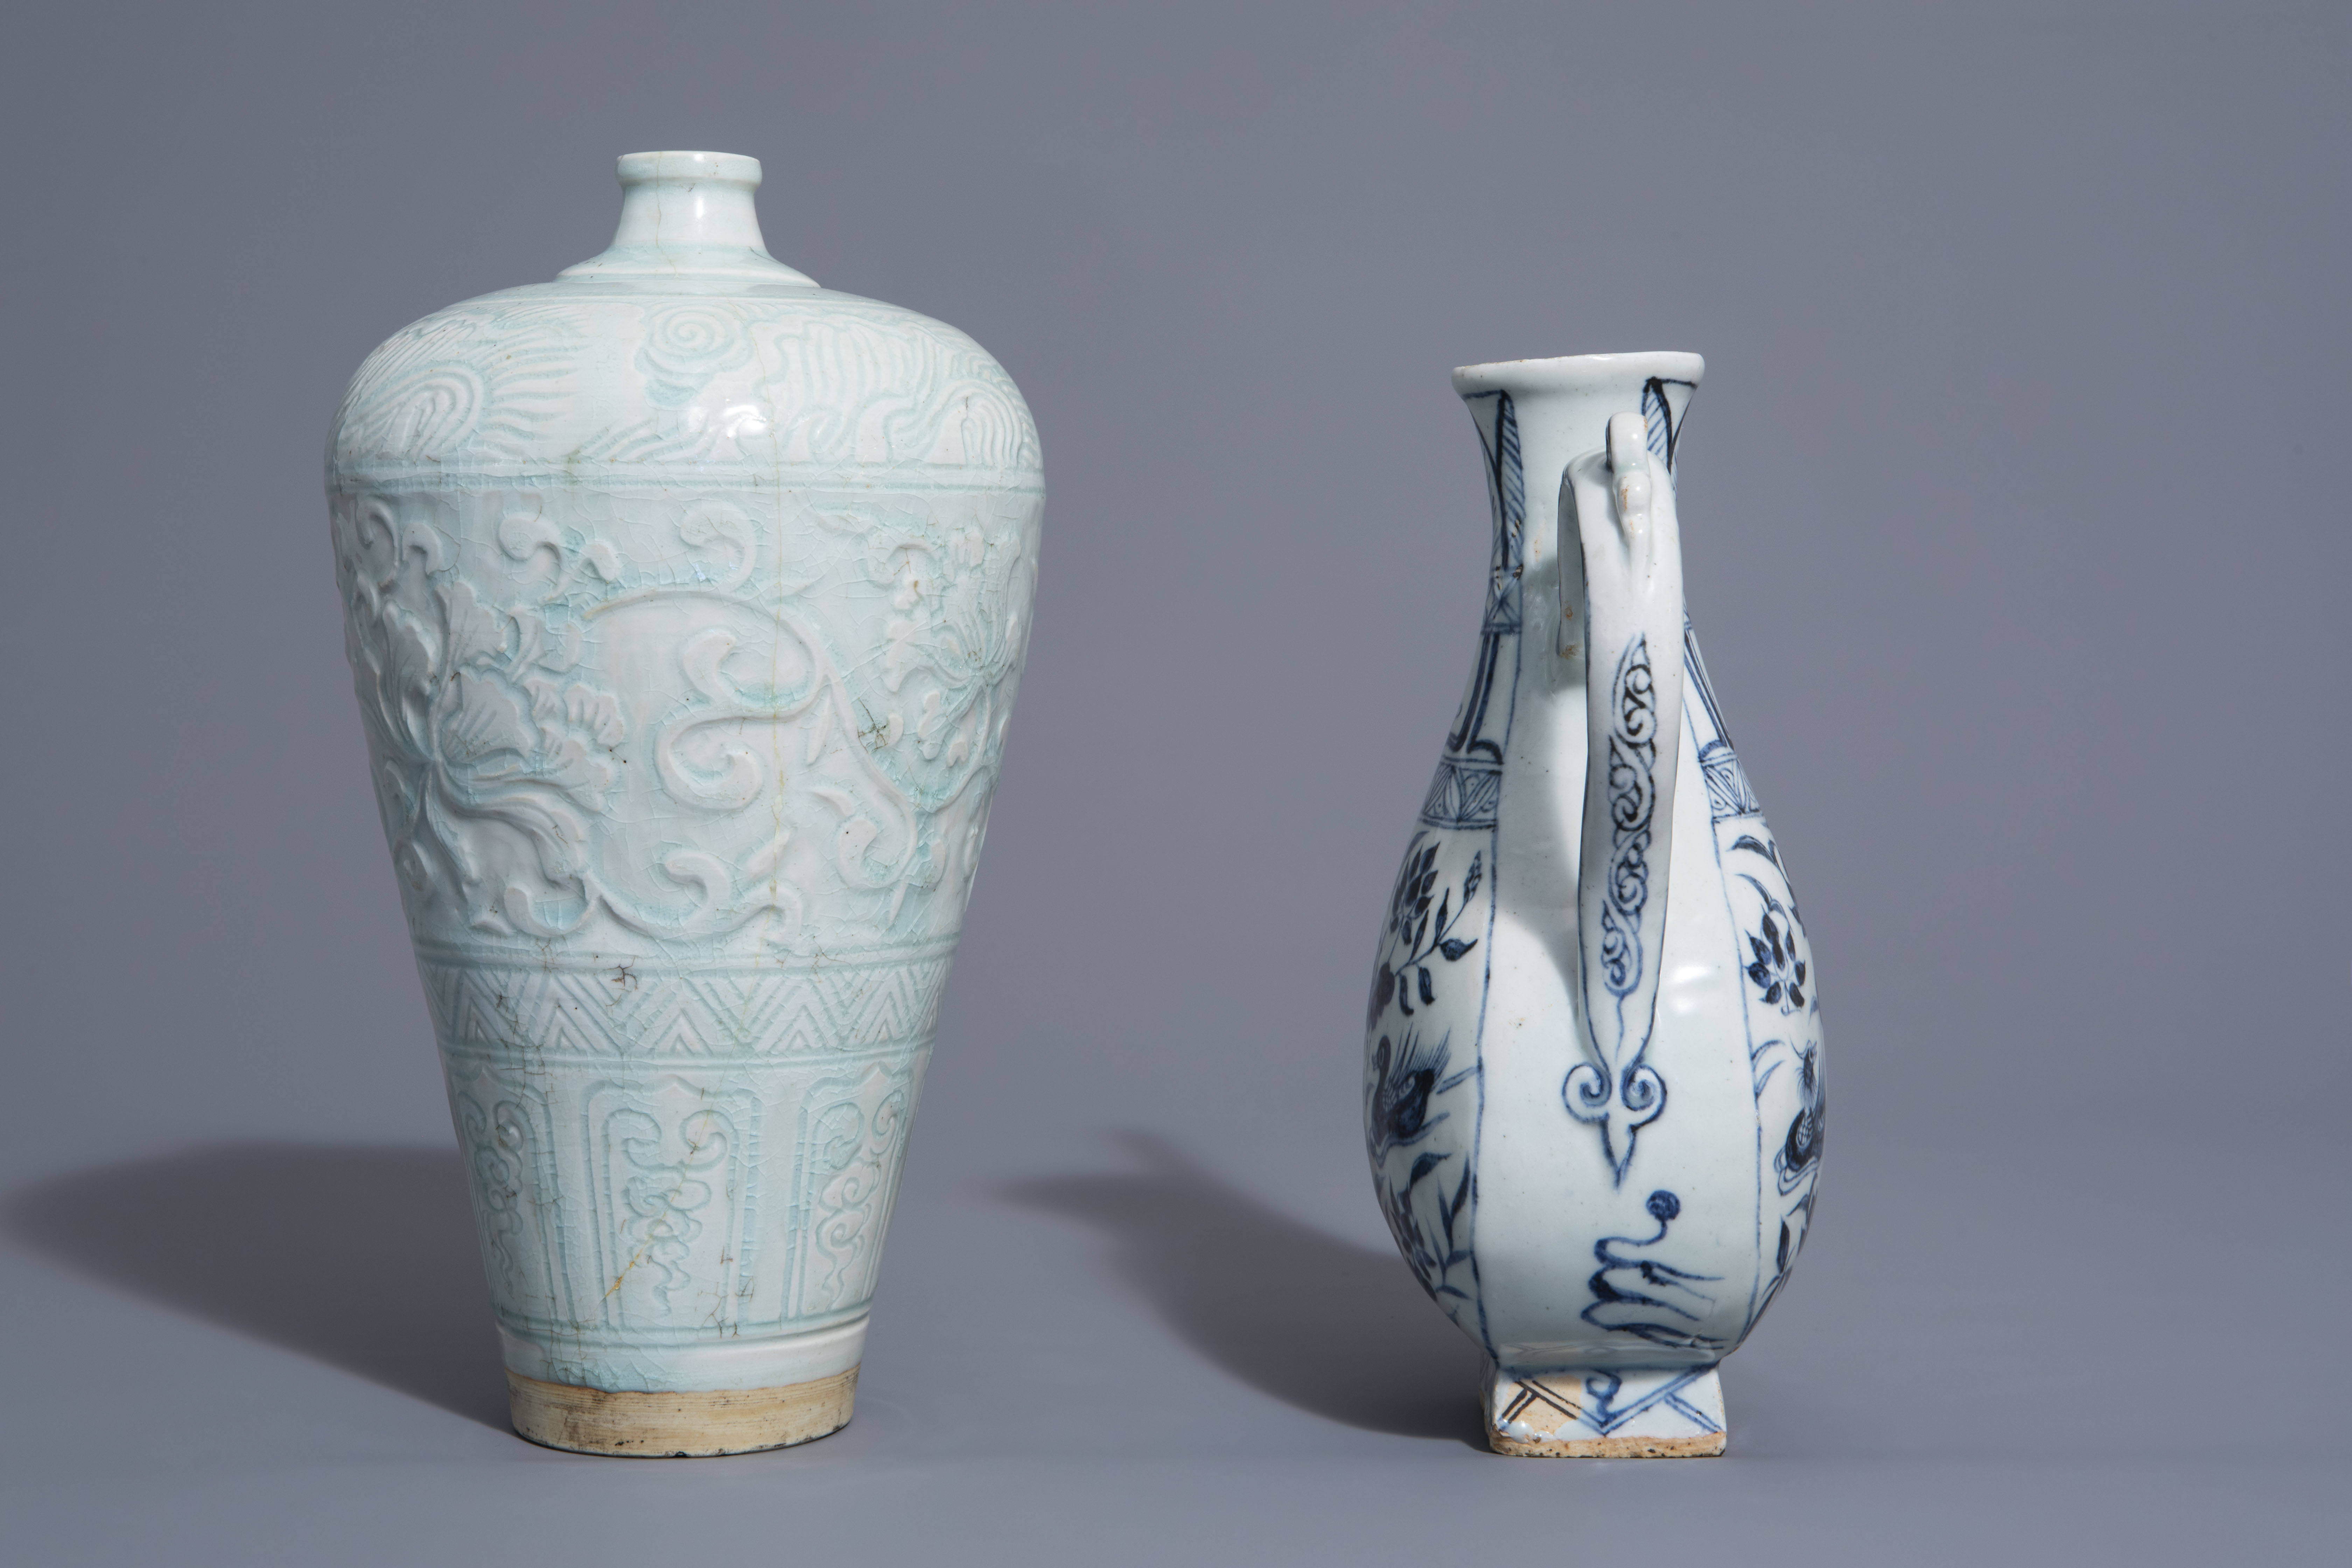 A Chinese blue and white jug and a qingbai vase in Yuan style, 19th/20th C. - Image 2 of 6